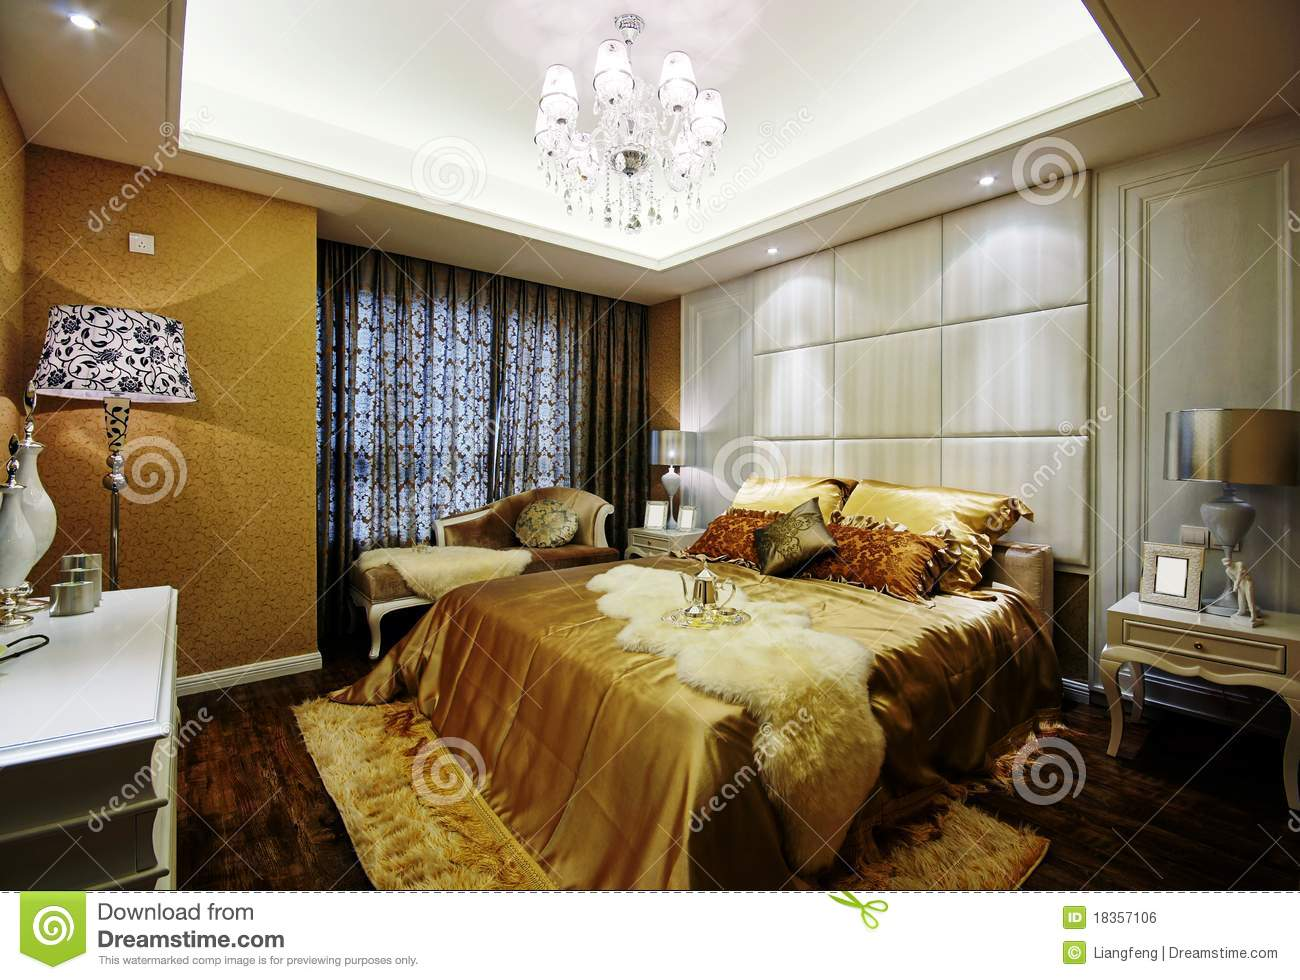 Beautiful Room Decoration Royalty Free Stock Image - Image ... on Beautiful Room Pics  id=93720